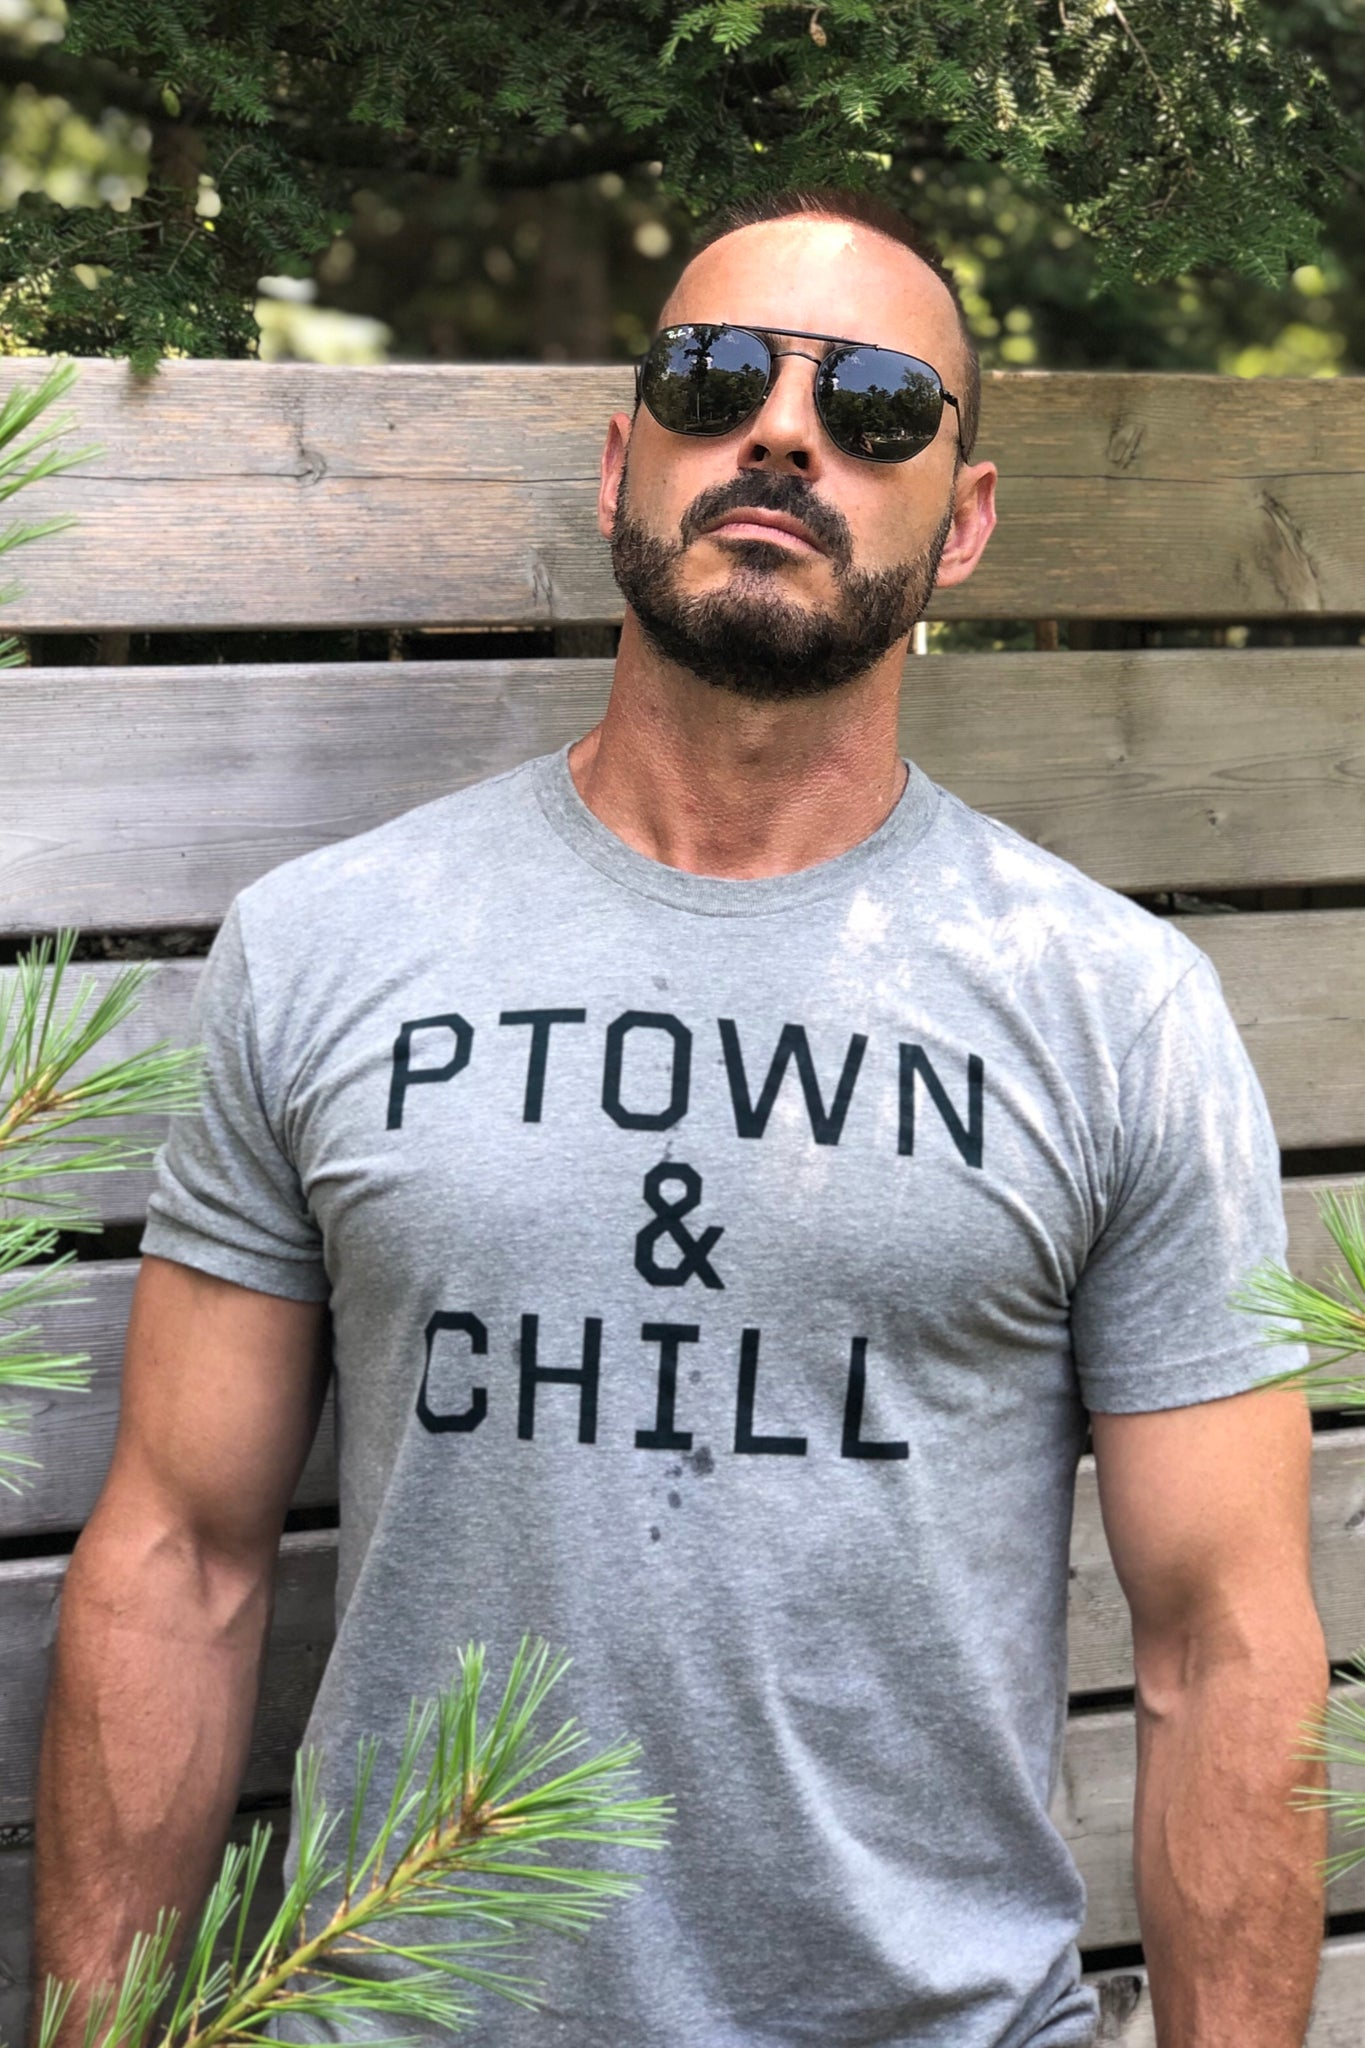 Ptown & Chill - Shirt